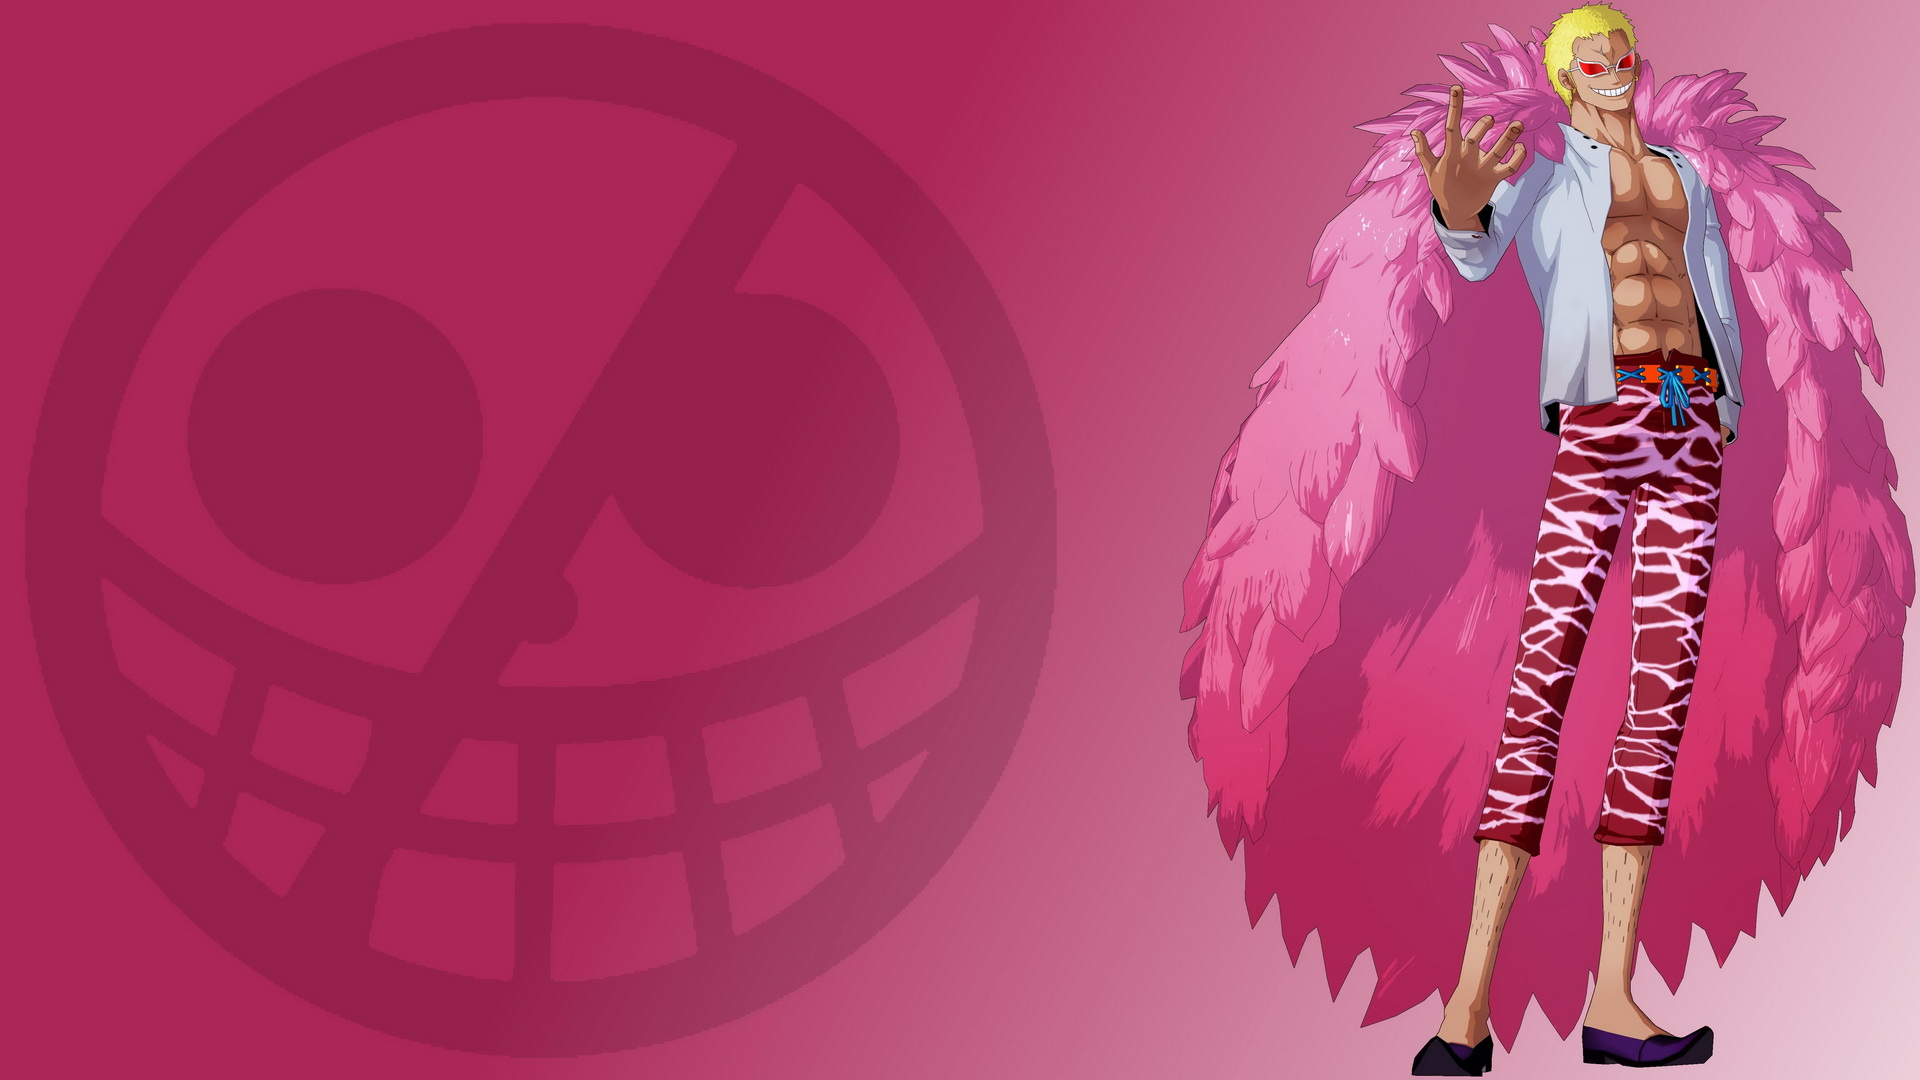 Donquixote Doflamingo One Piece Doflamingo Png 1131789 Hd Wallpaper Backgrounds Download